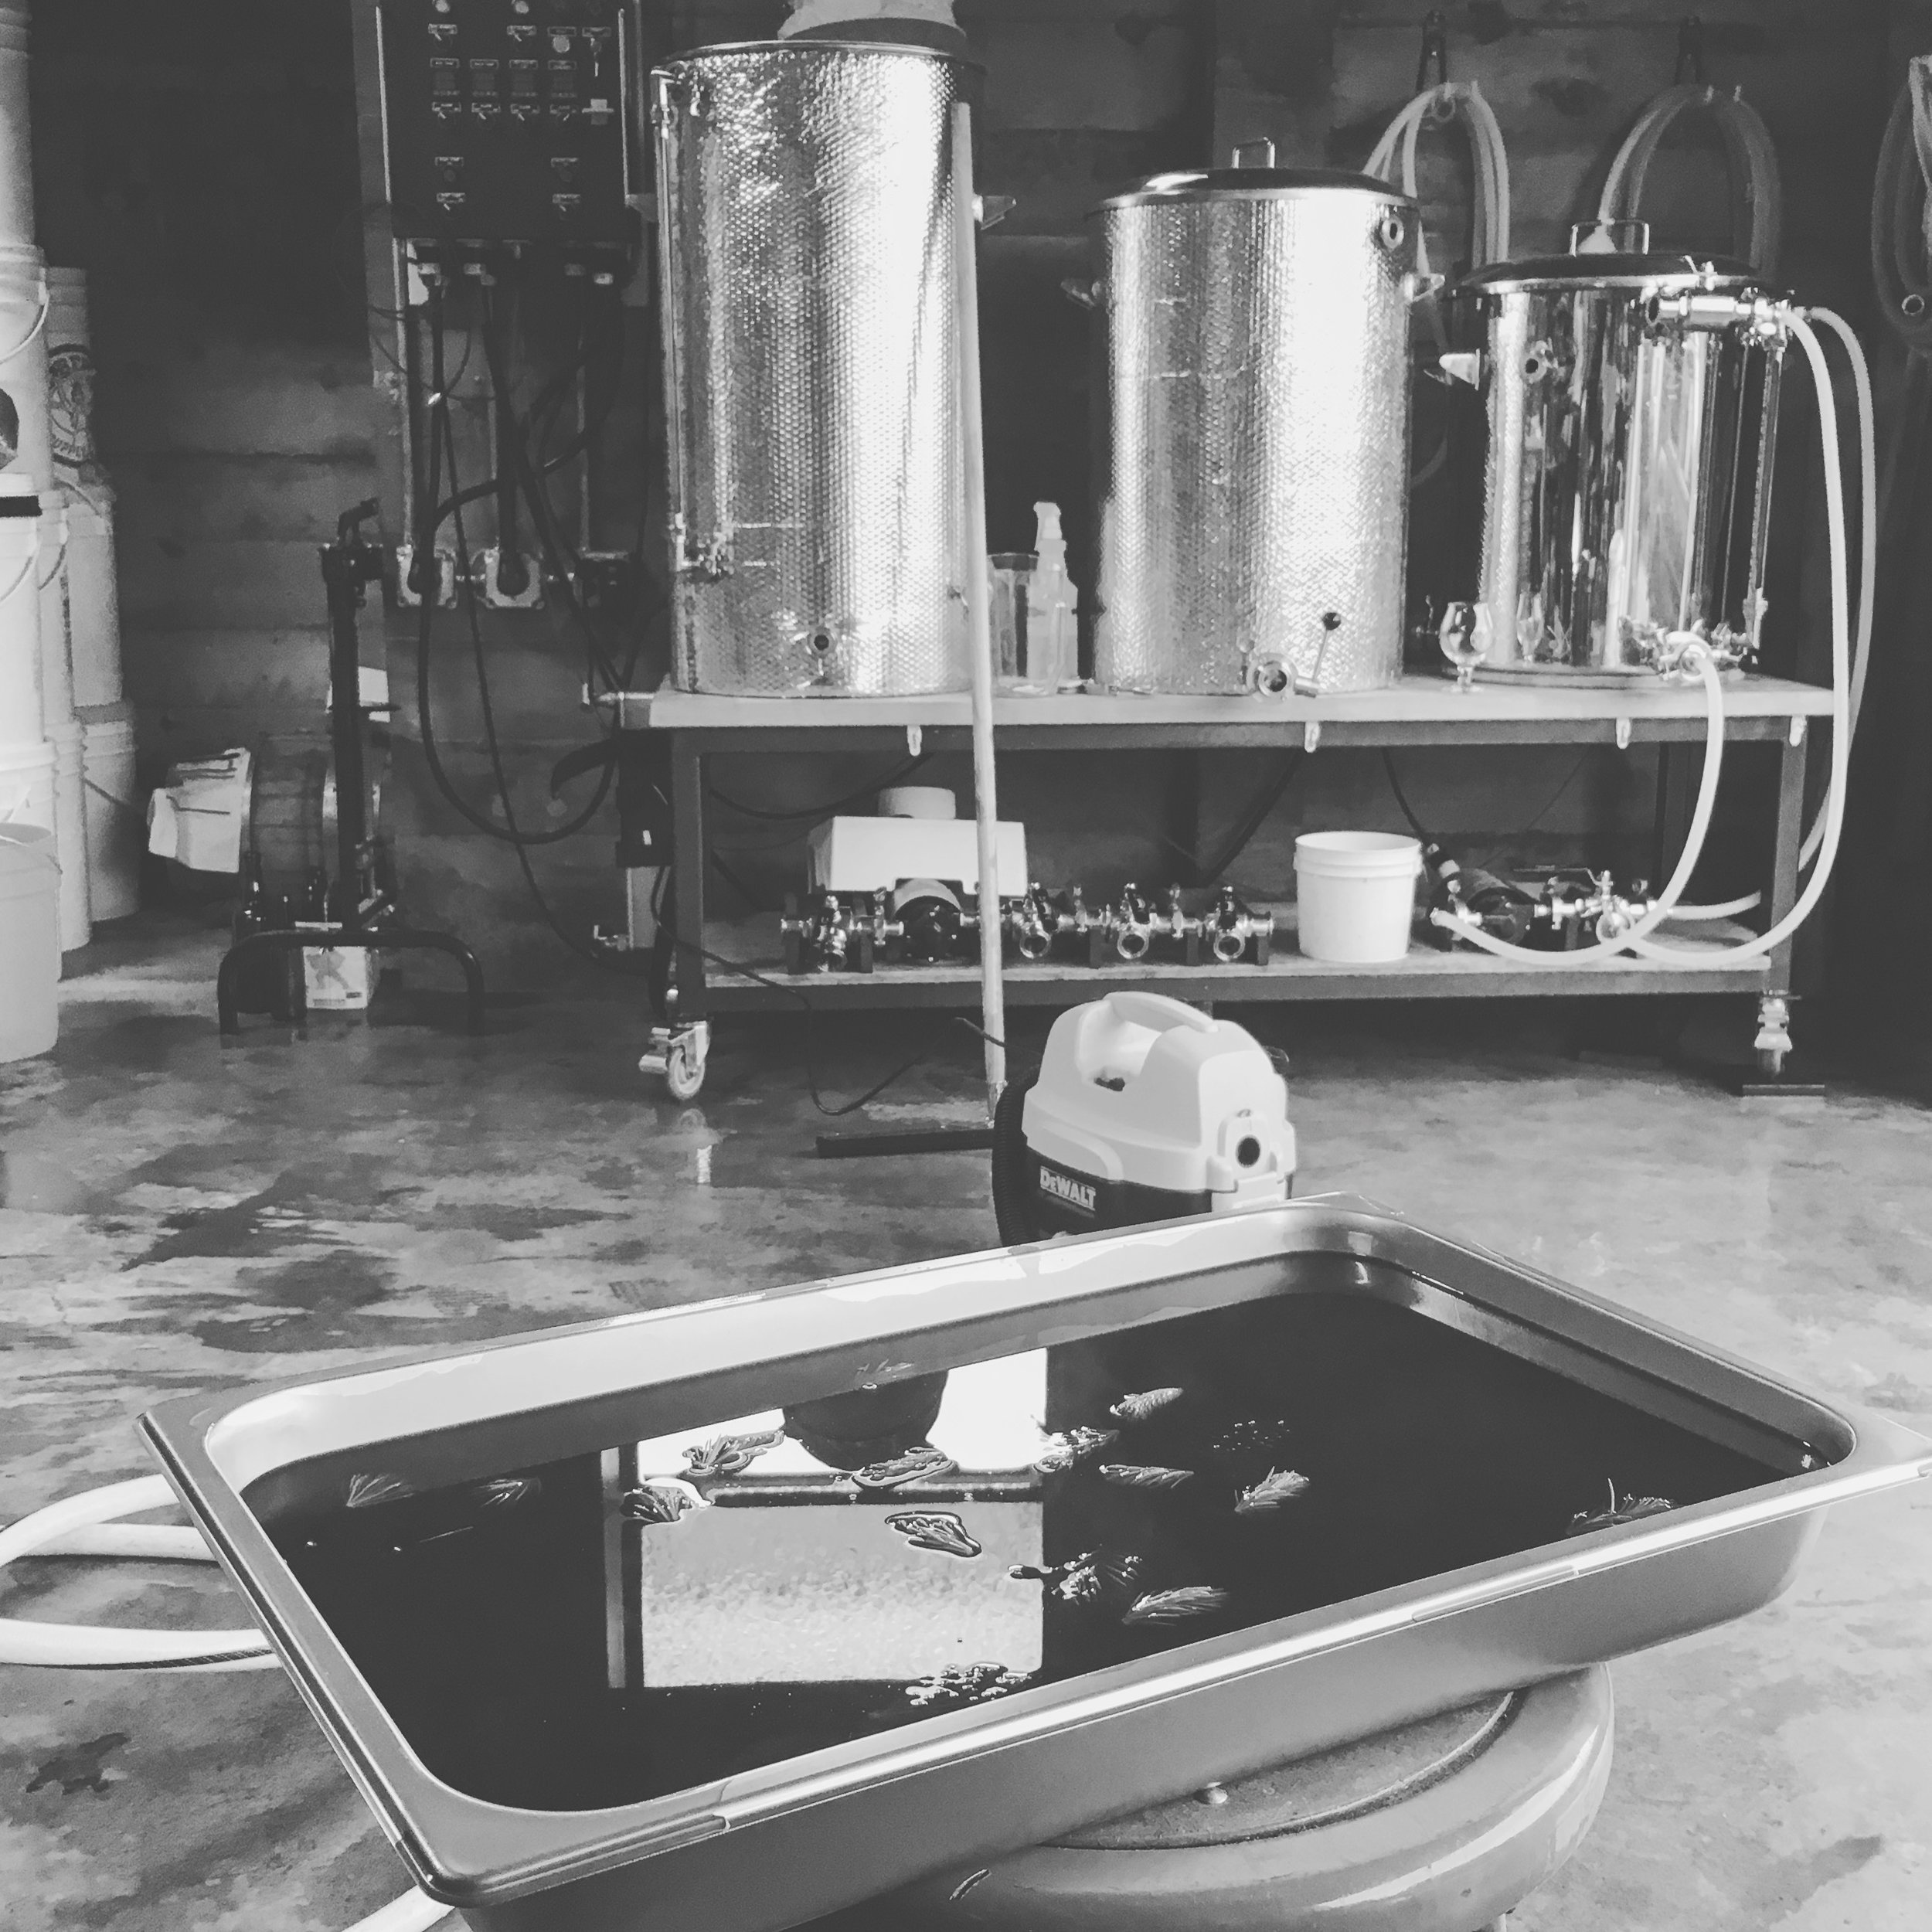 Capturing yeast on a homebrew batch with our 'pilot' cool ship.